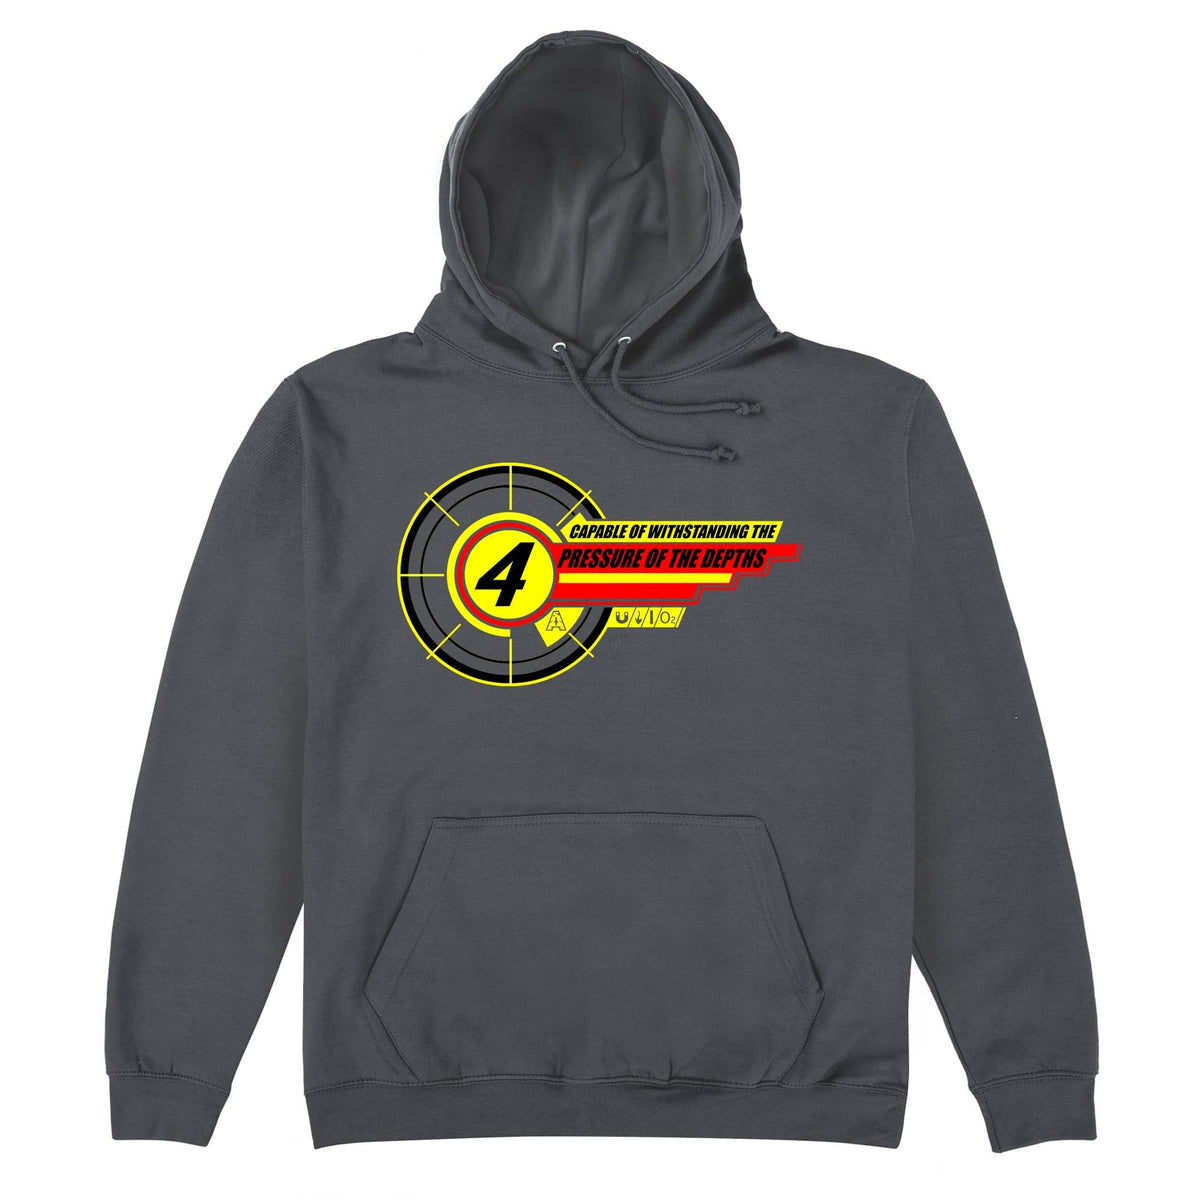 Thunderbird 4 Inspired Hoodie - The Gerry Anderson Store